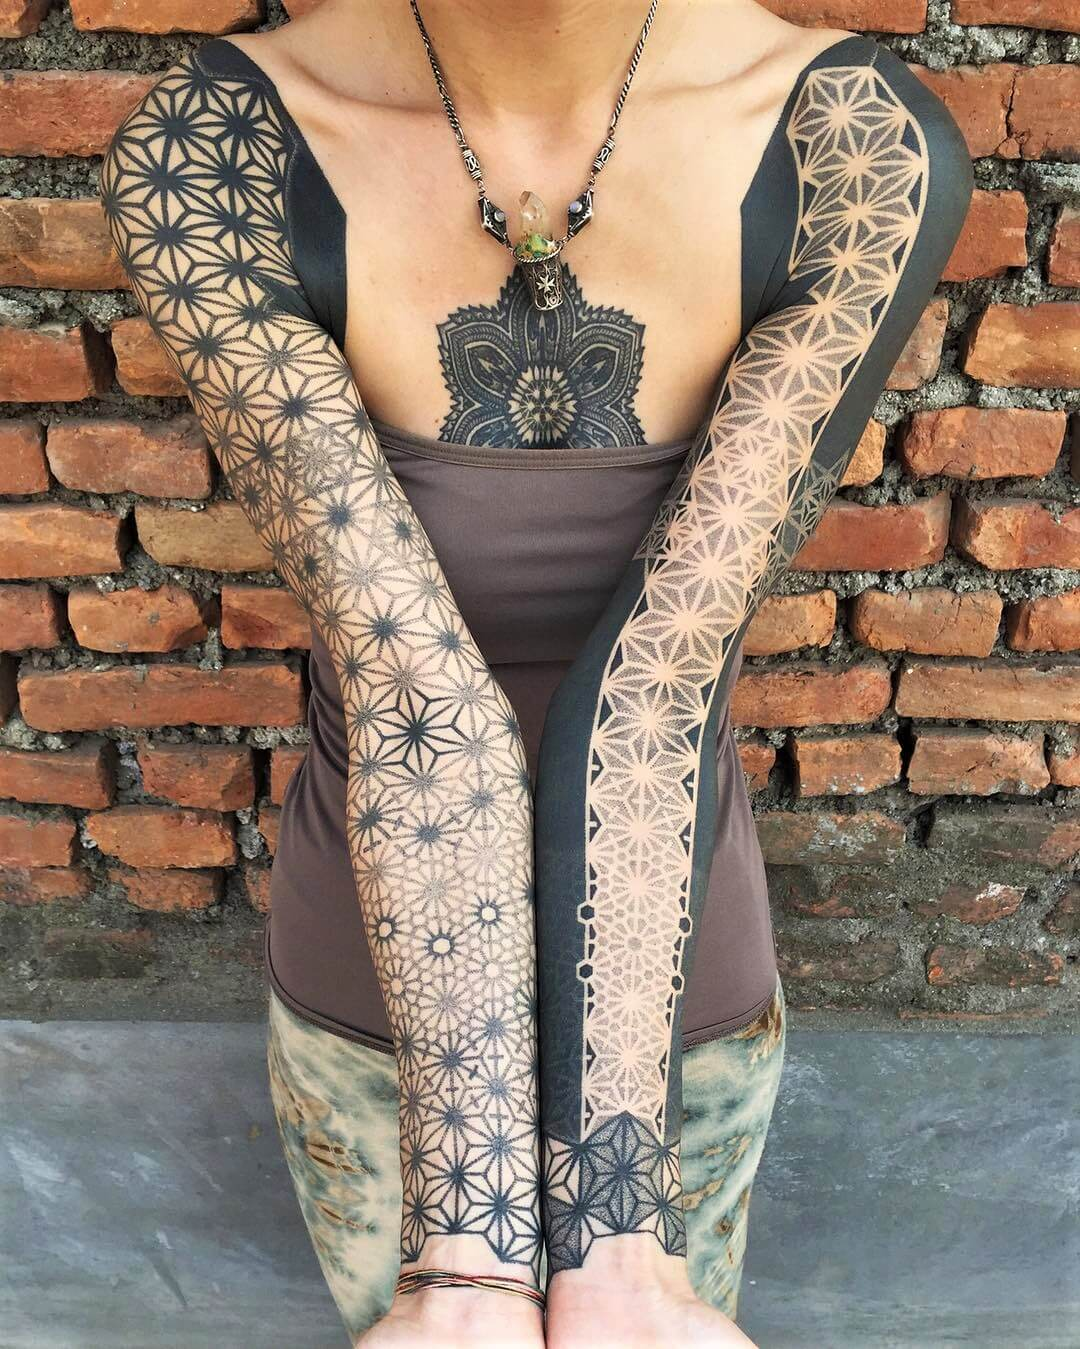 Geometric Flower Tattoo Sleeve: 32 Sleeve Tattoos Ideas For Women